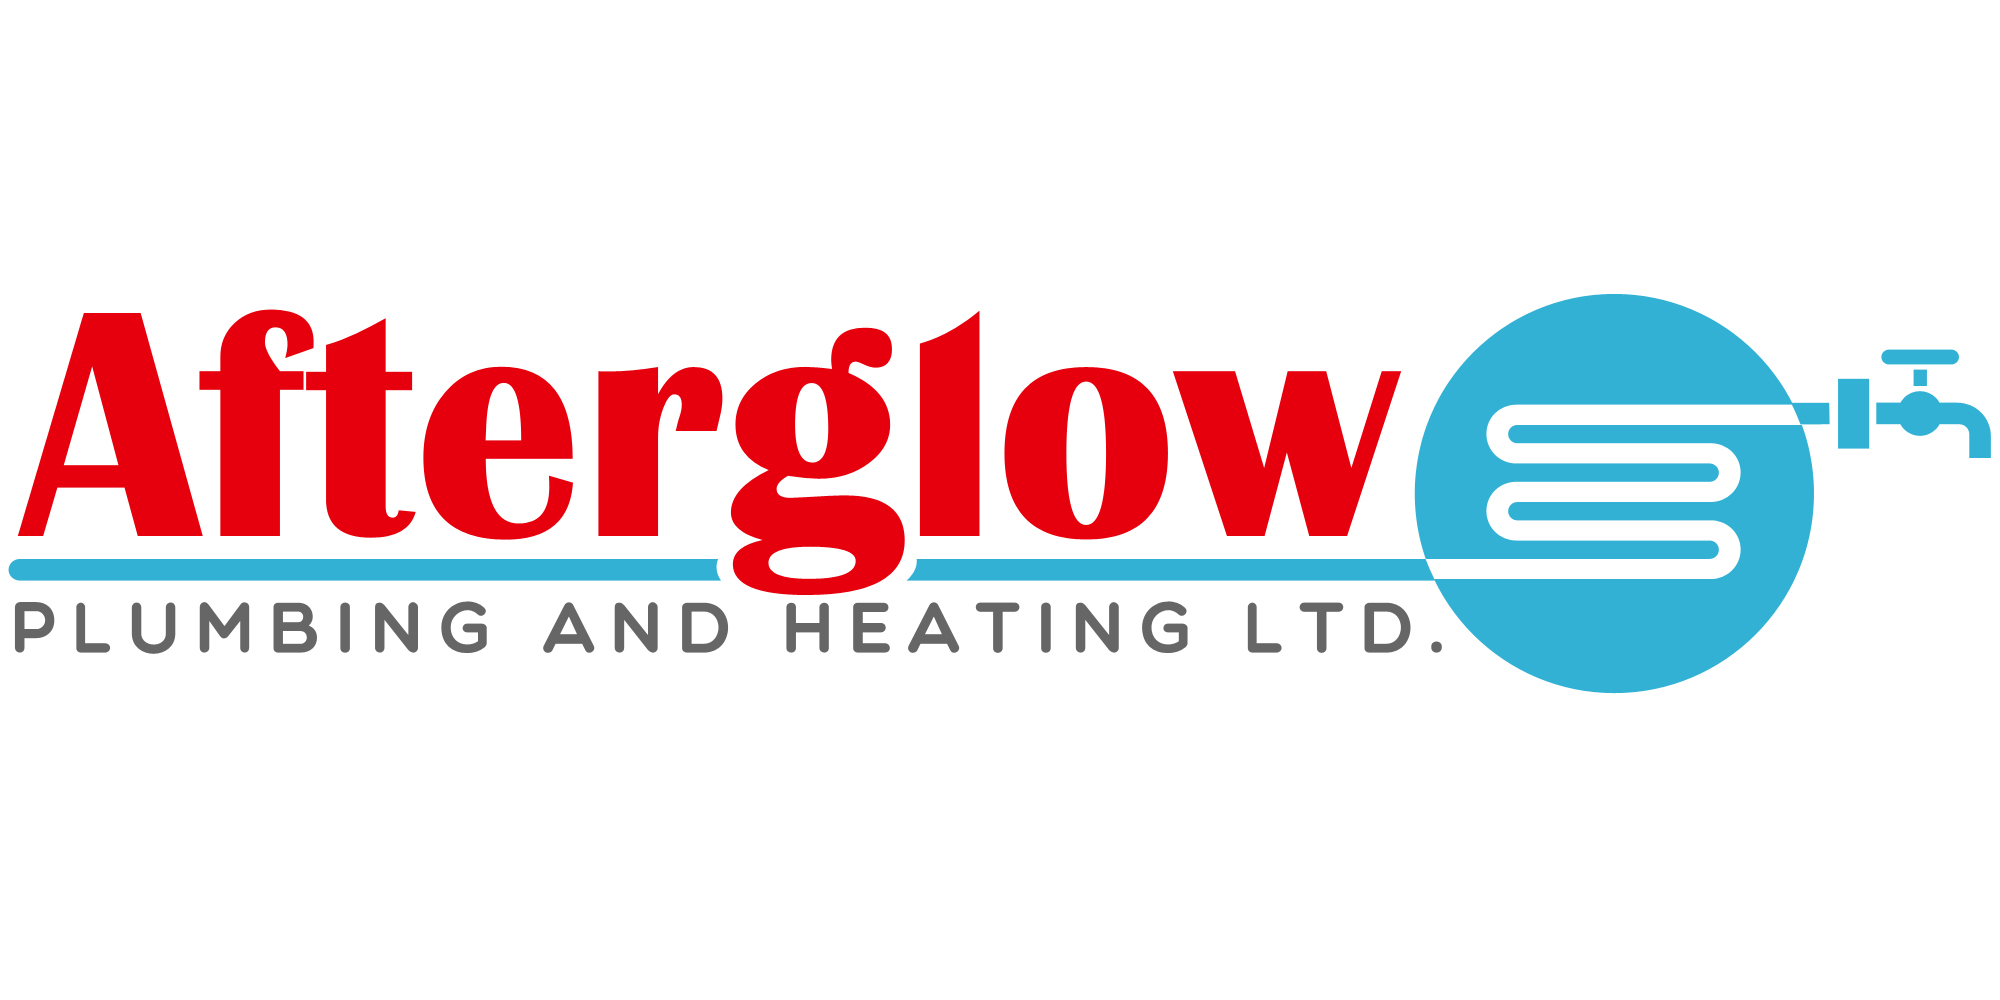 Afterglow Plumbing & Heating Ltd. Verified Logo